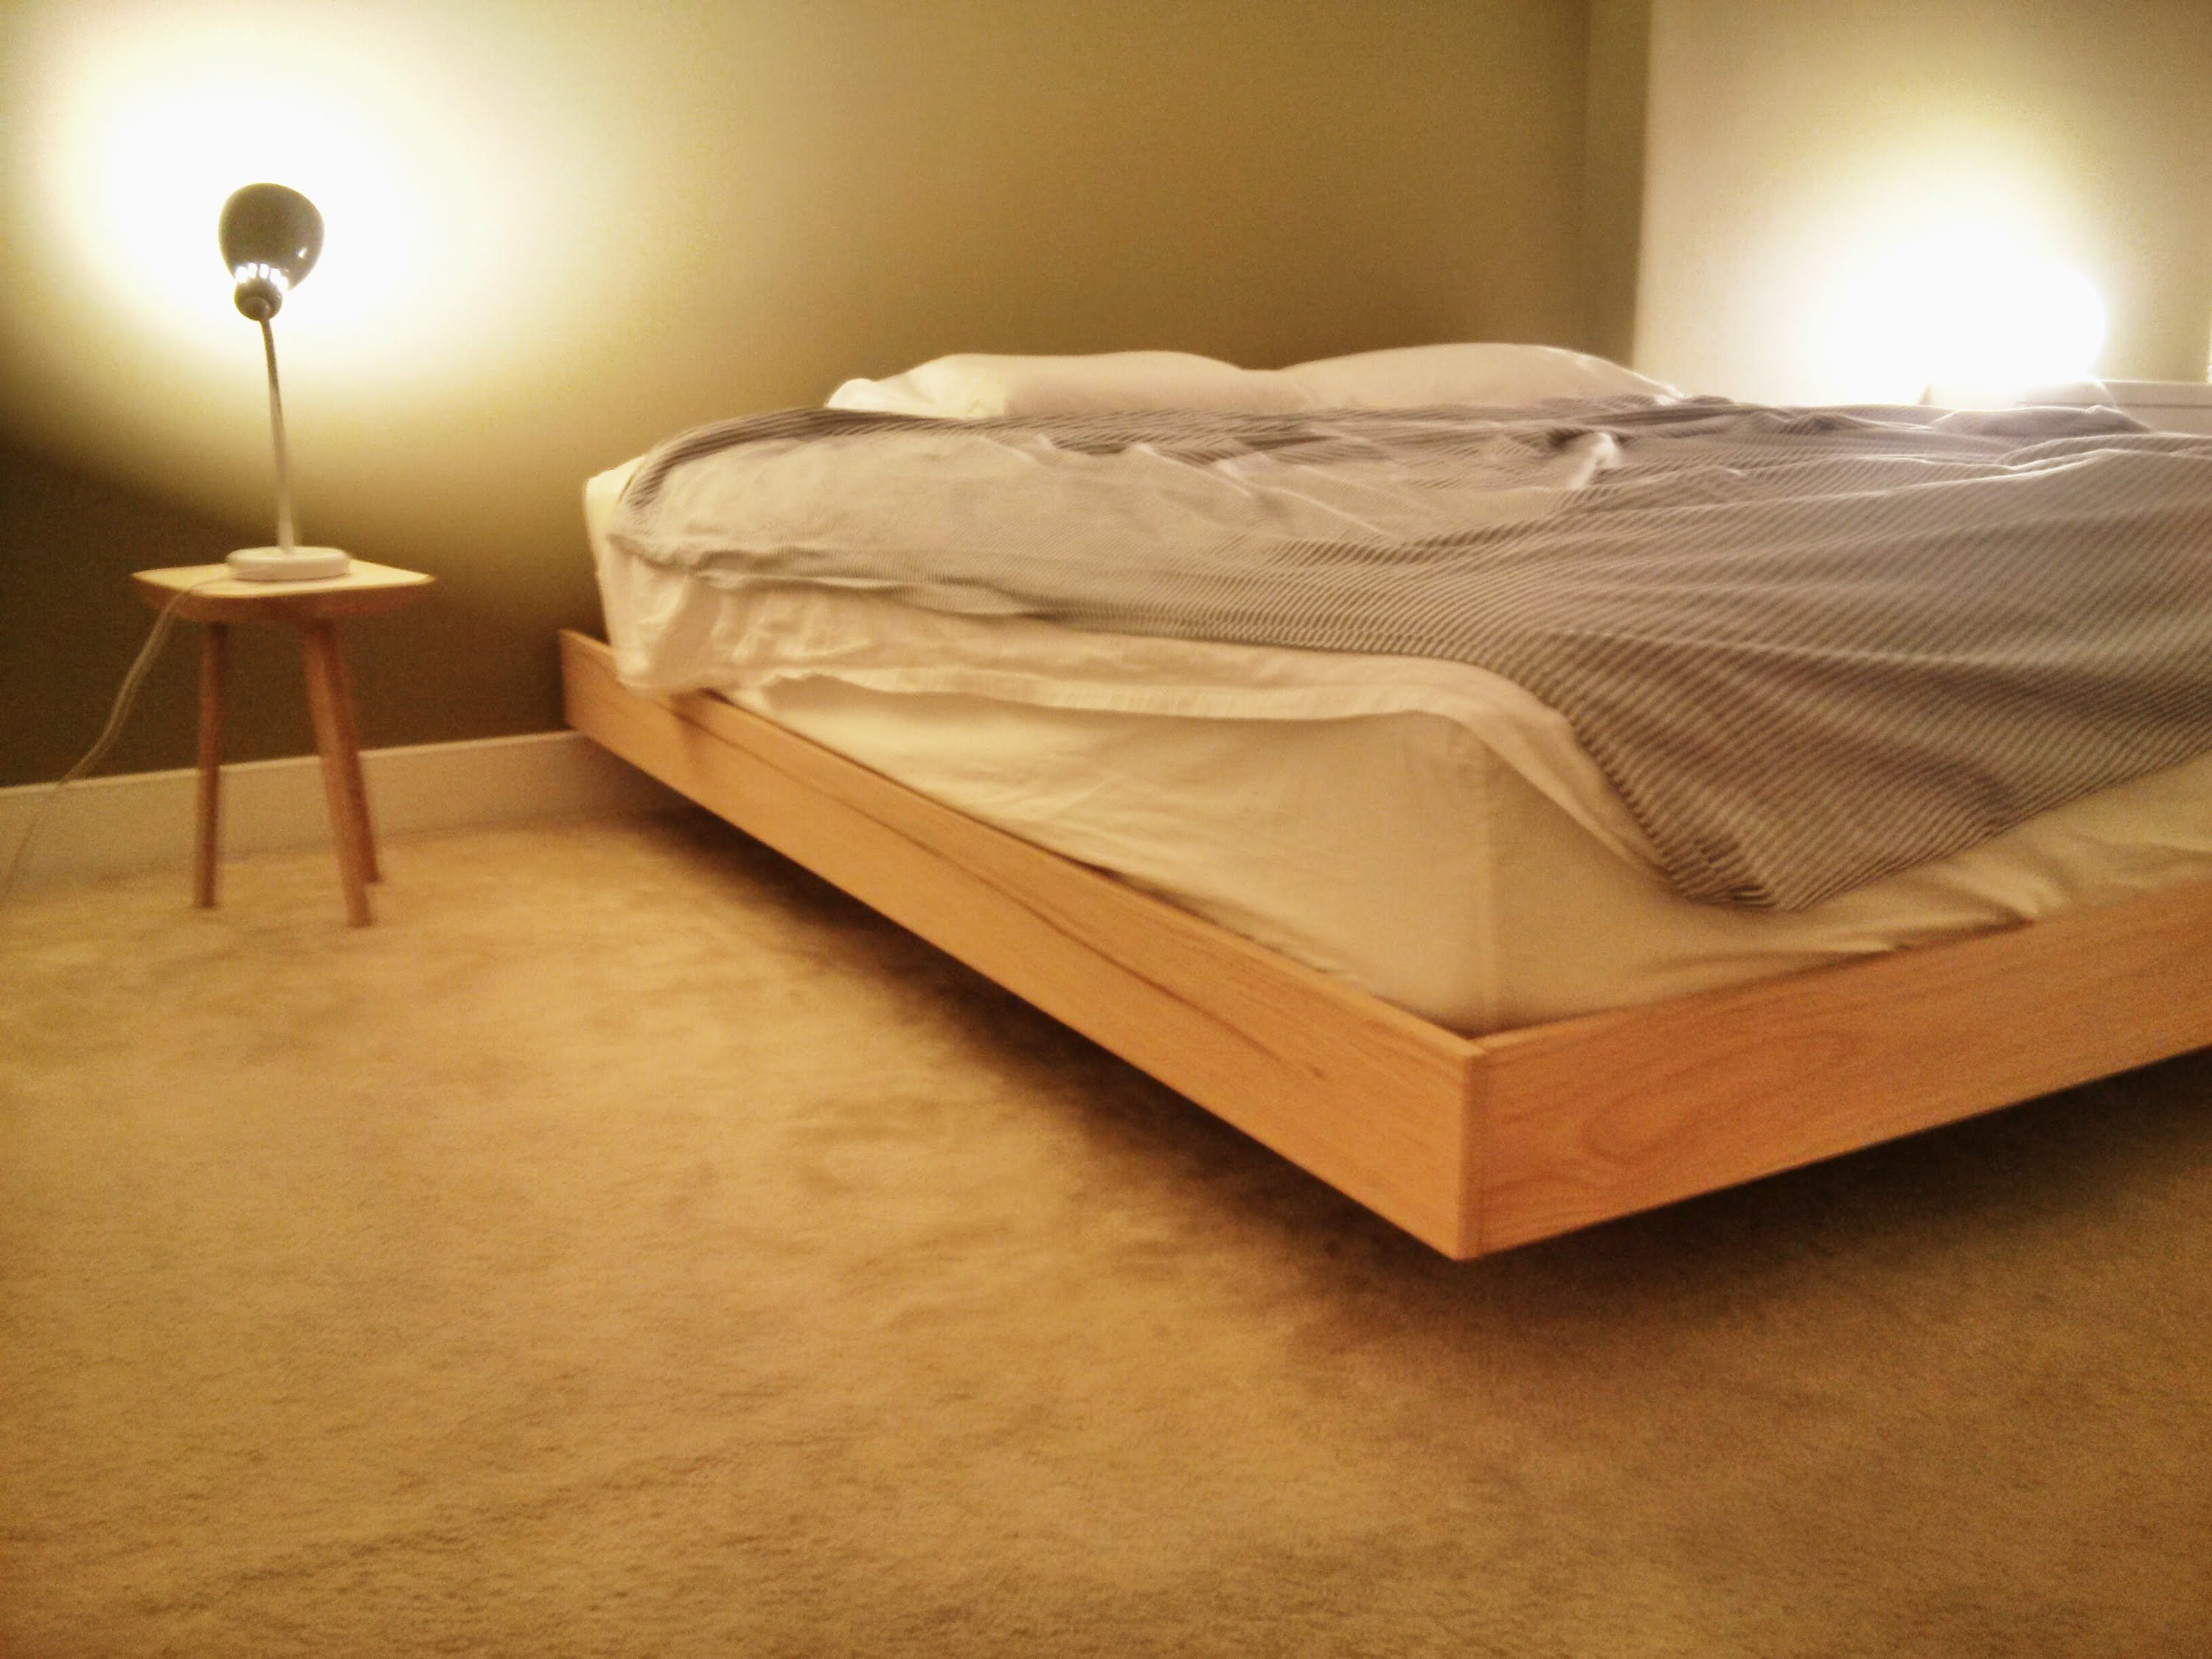 DIY floating platform bed using 2x3, 2x4, 1x4, white oak, some screws